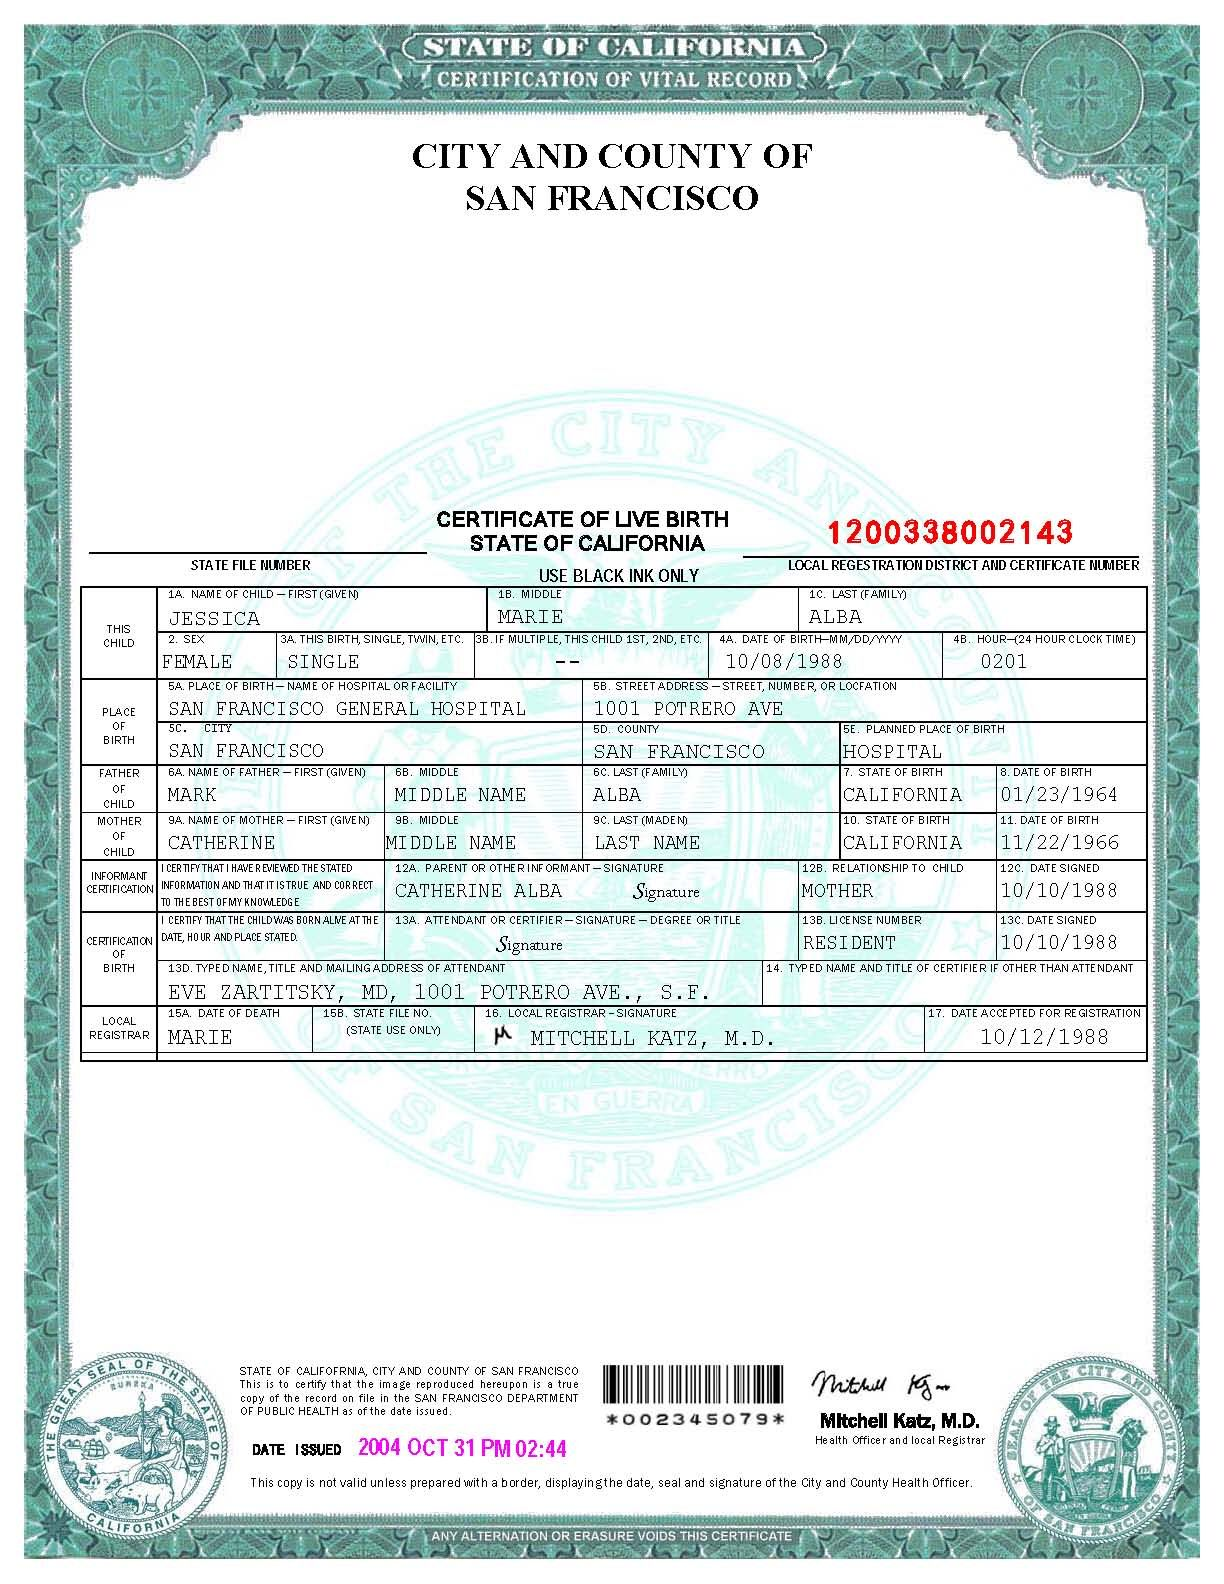 san francisco birth certificate template - Certificate Of Birth Template